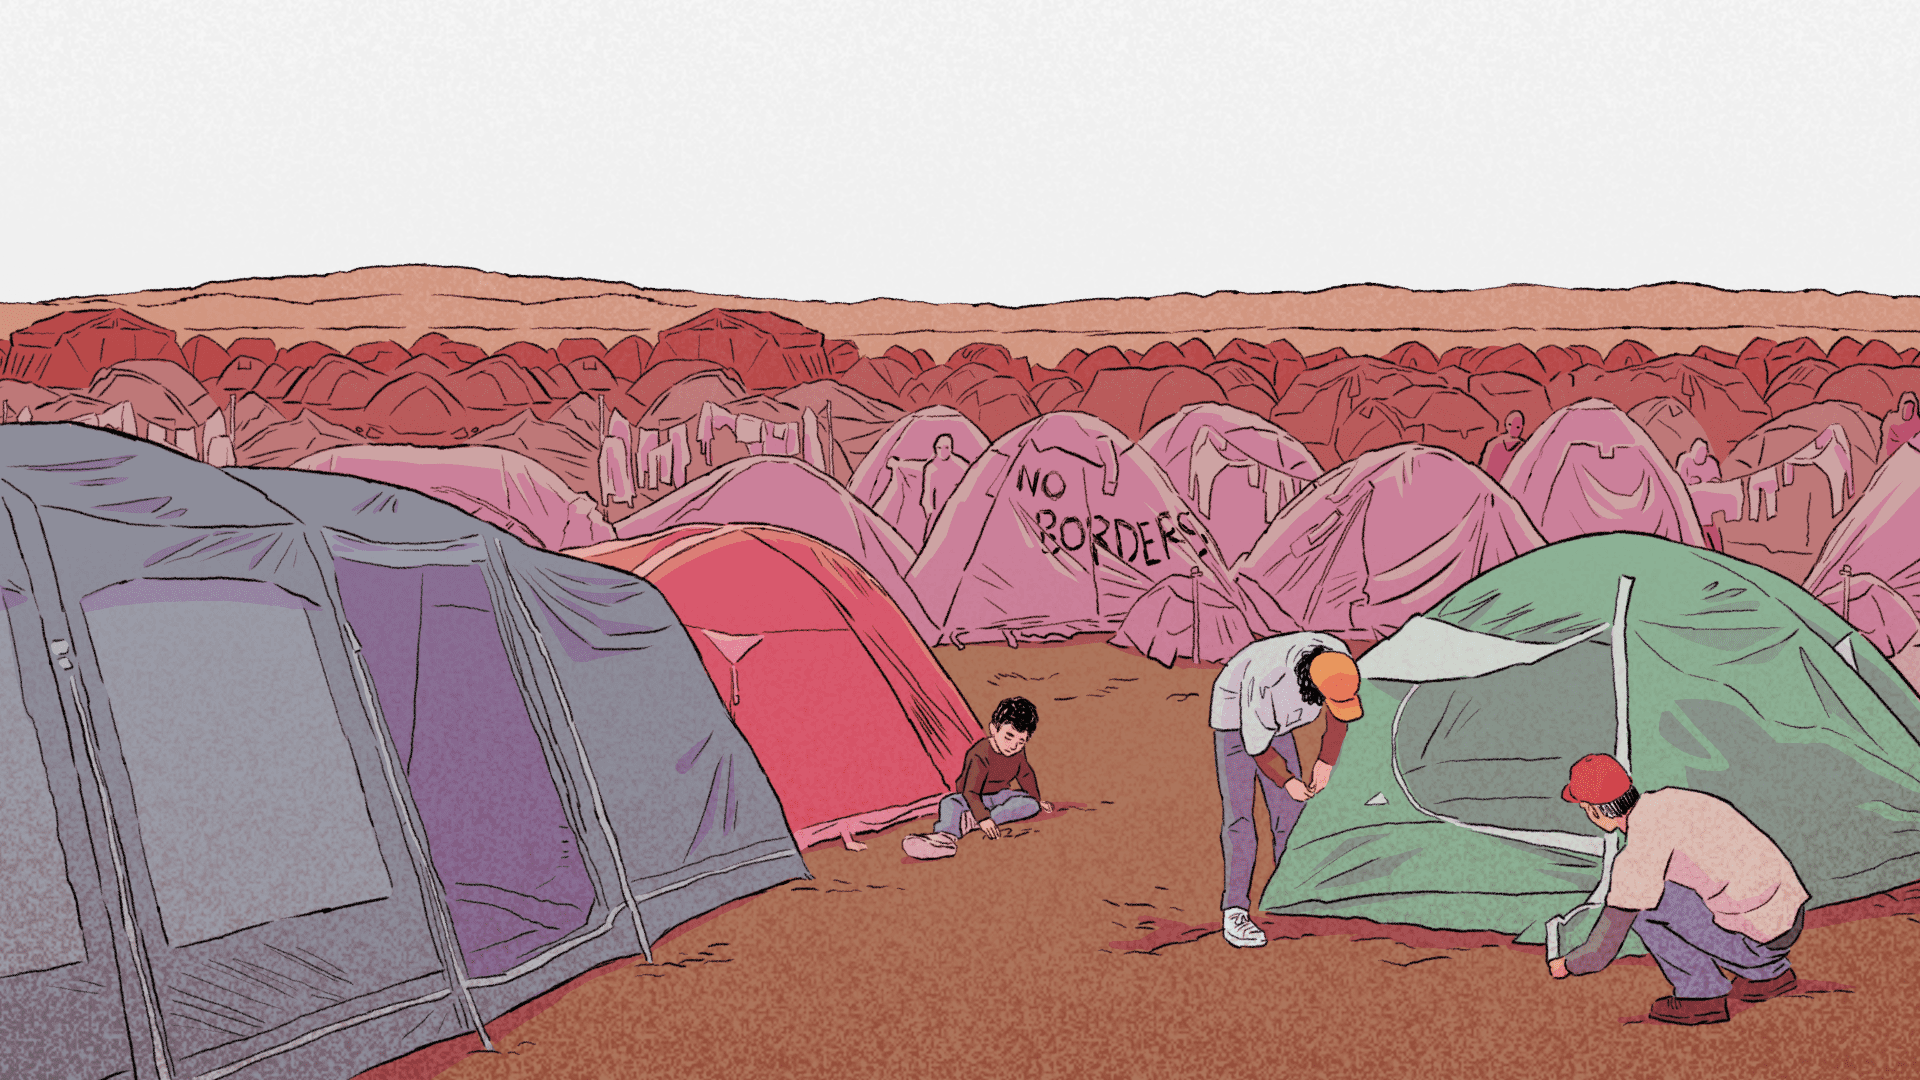 Bury Me, My Love is the stirring story of a refugee's dangerous journey